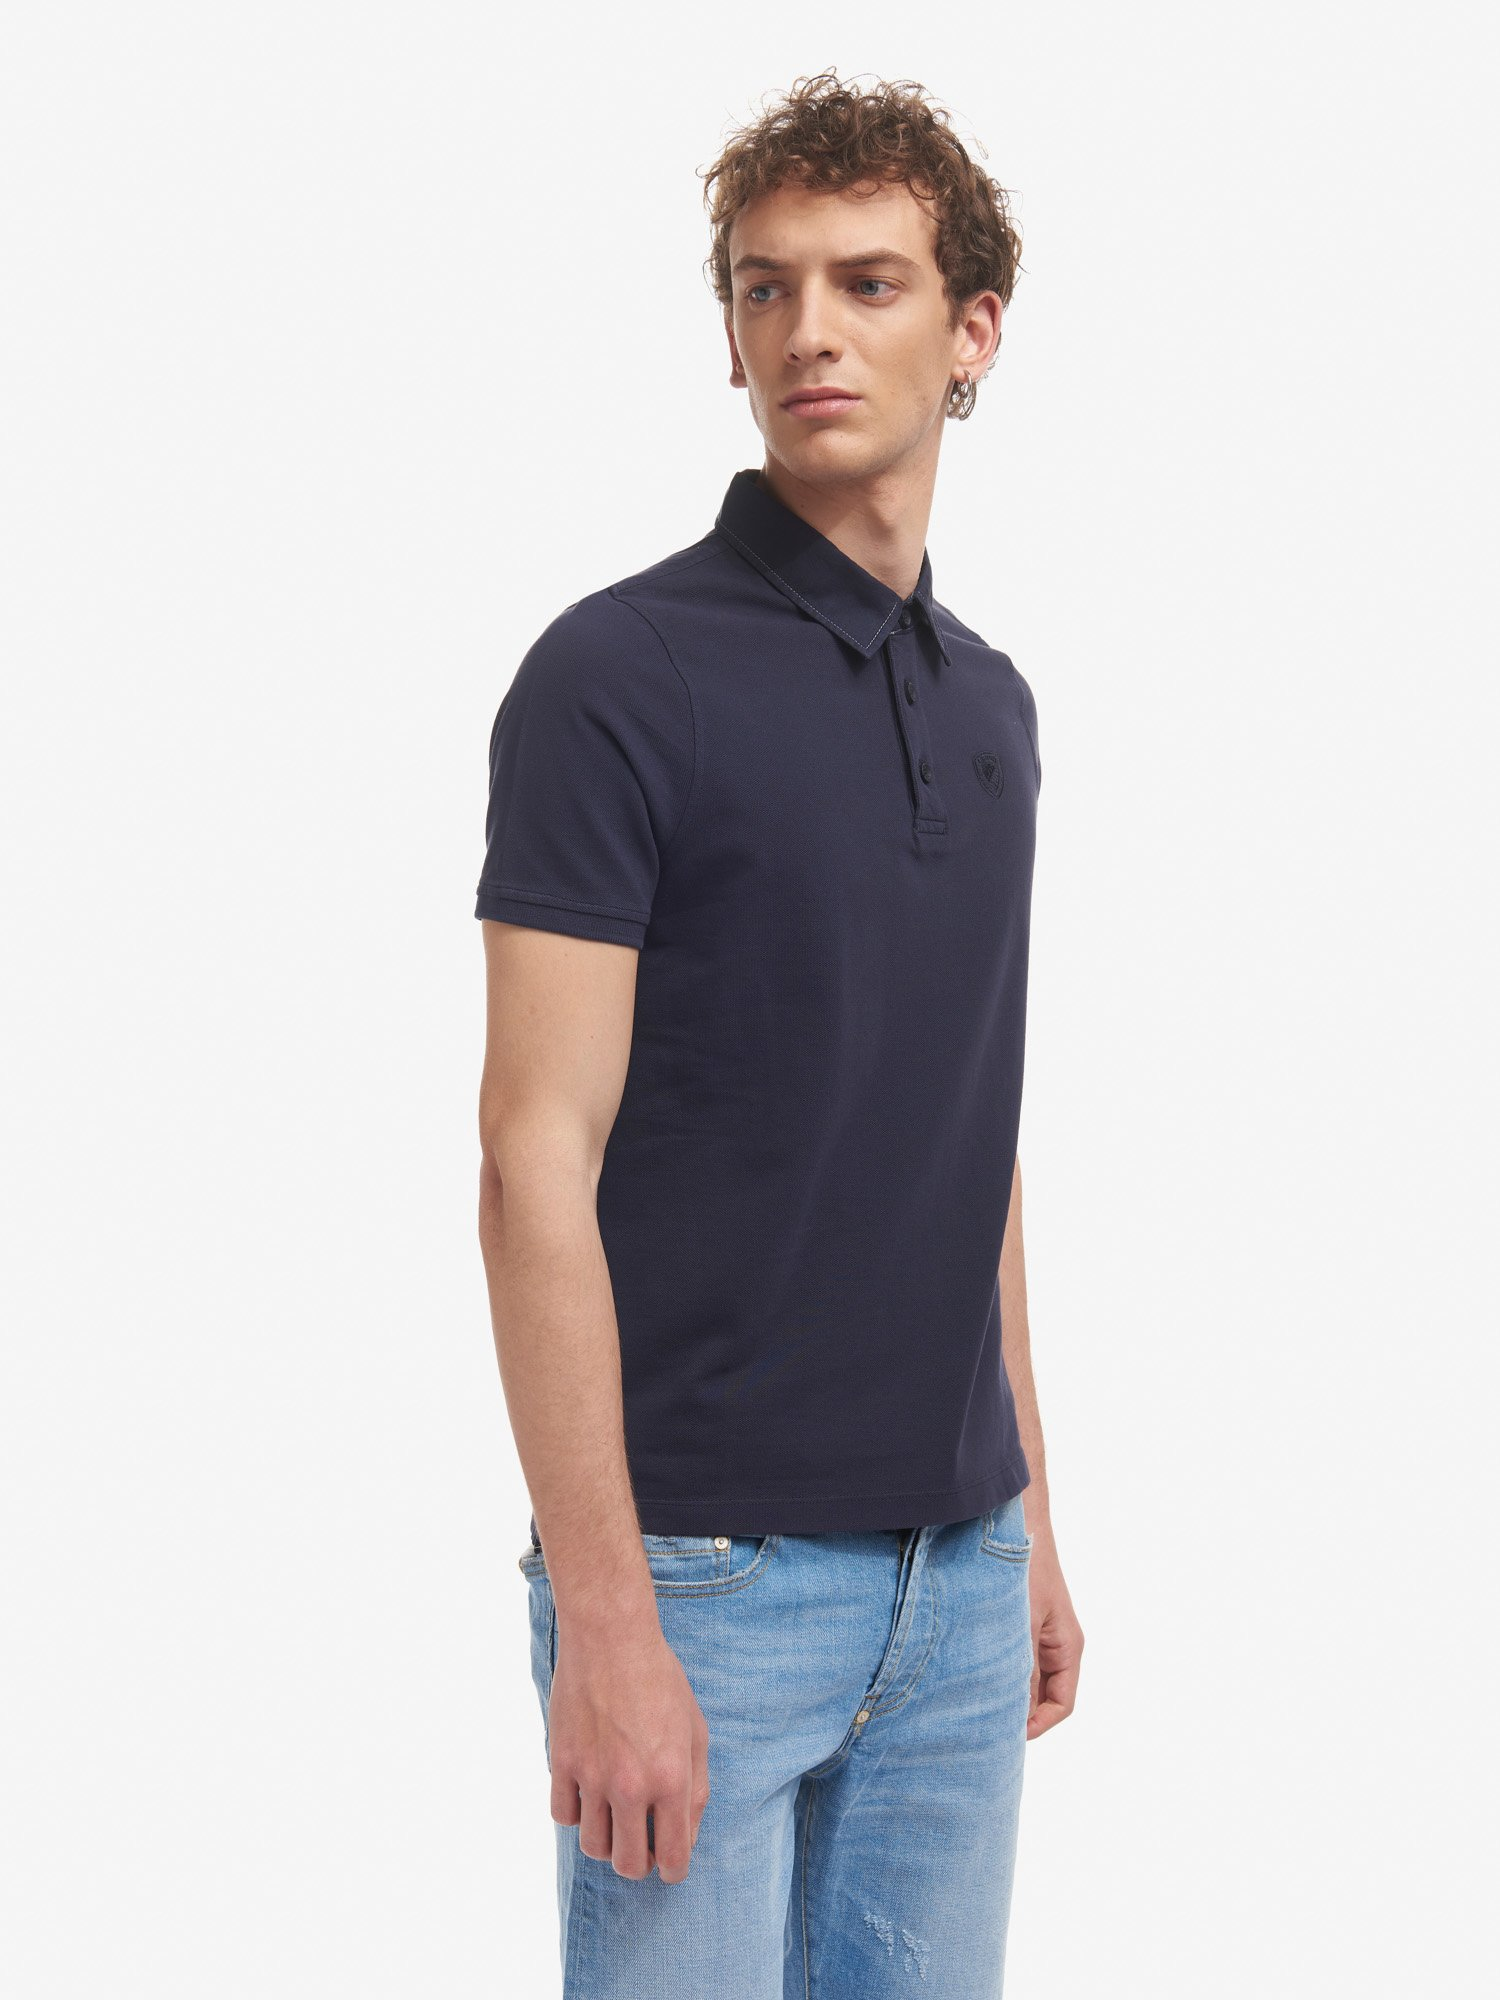 POLO SHIRT WITH CONTRASTING COLOUR COLLAR - Blauer